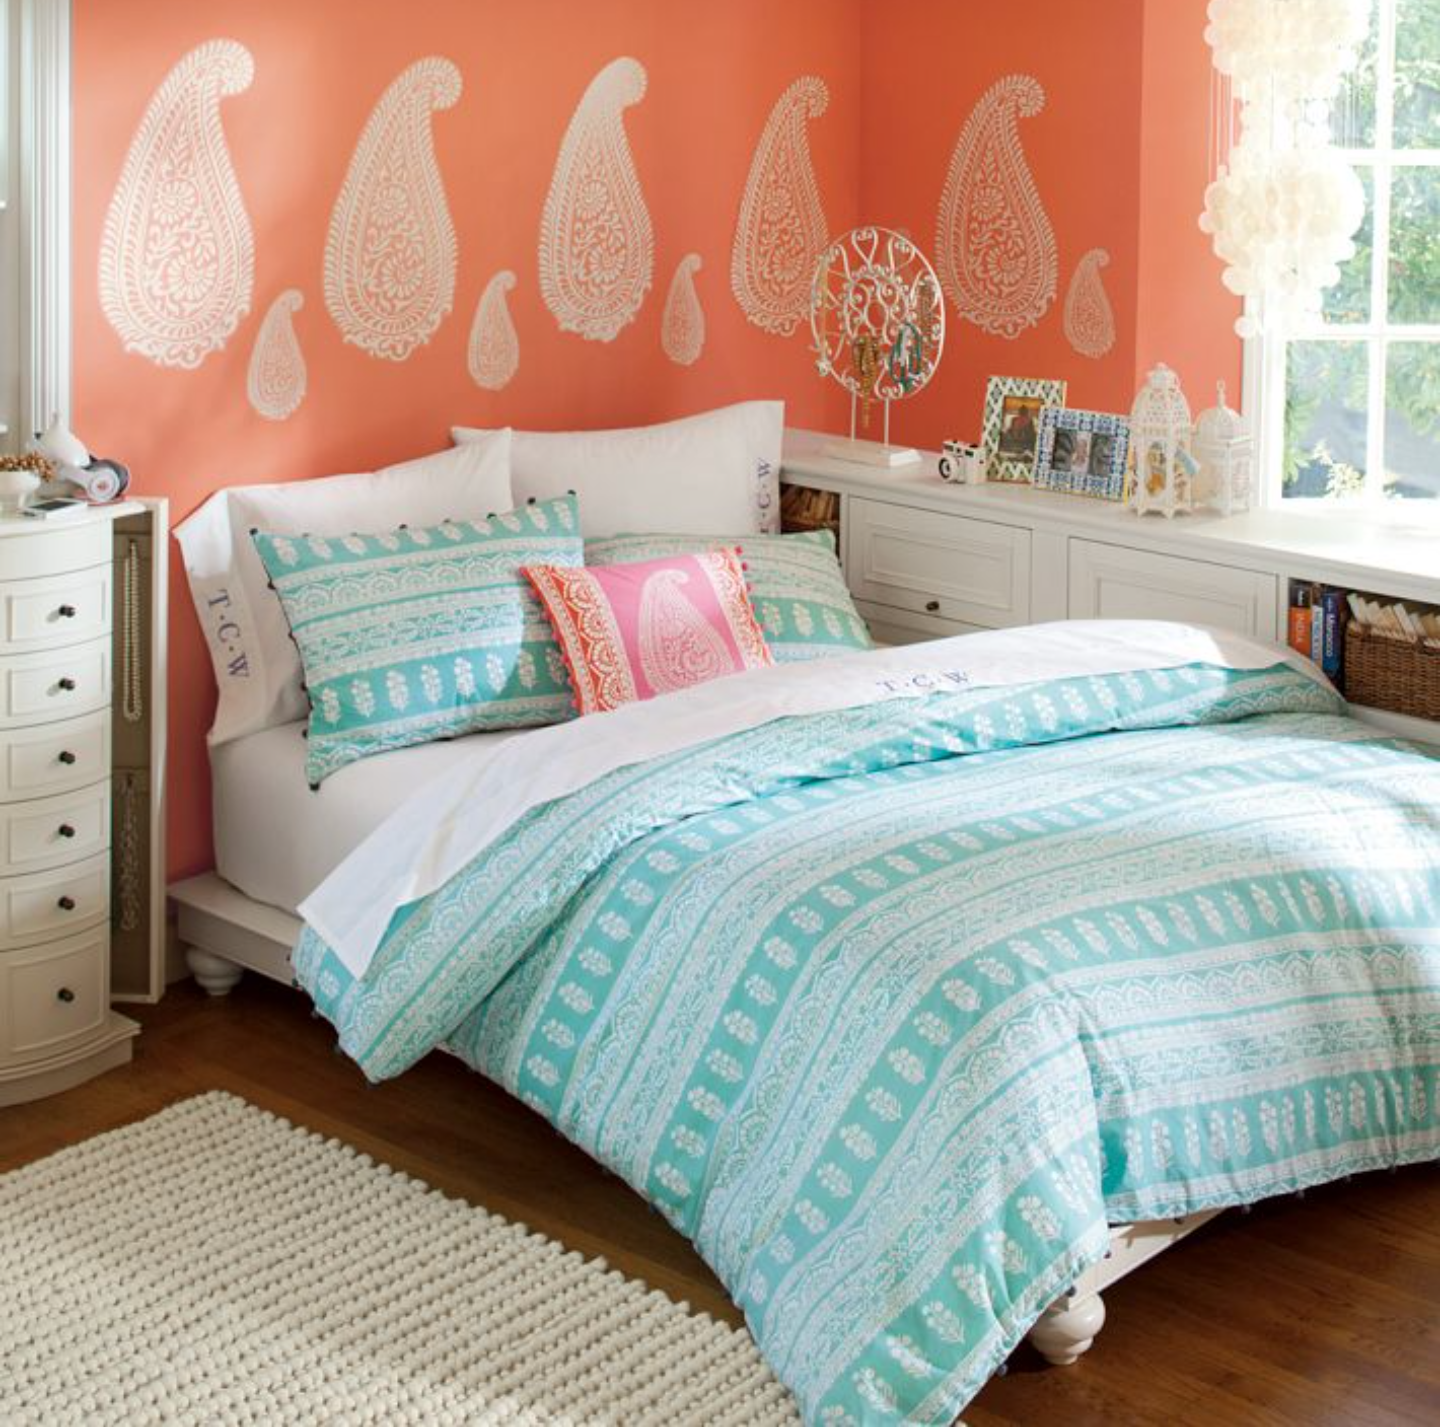 Perfect for a teen or preteen Love the light peach coral walls with